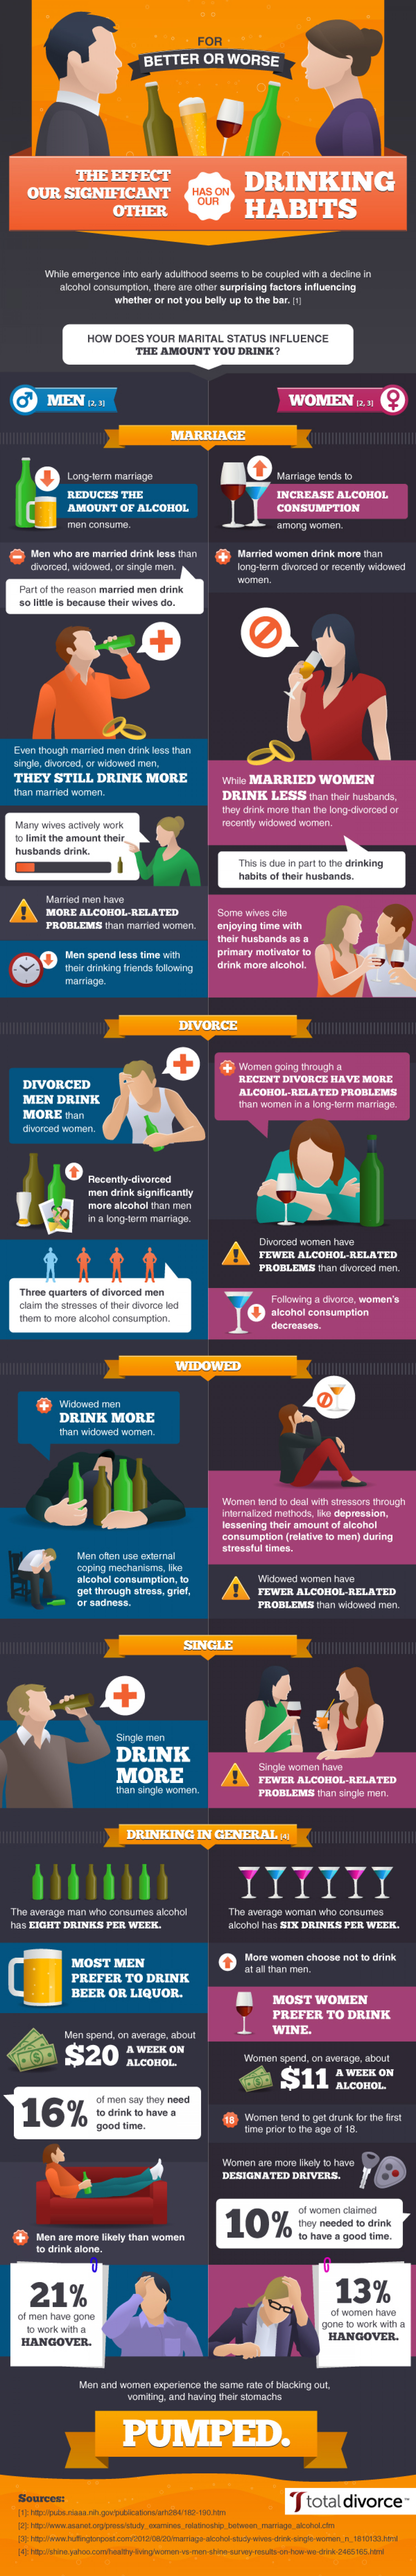 The Effect Our Significant Other Has on Our Drinking Habits Infographic